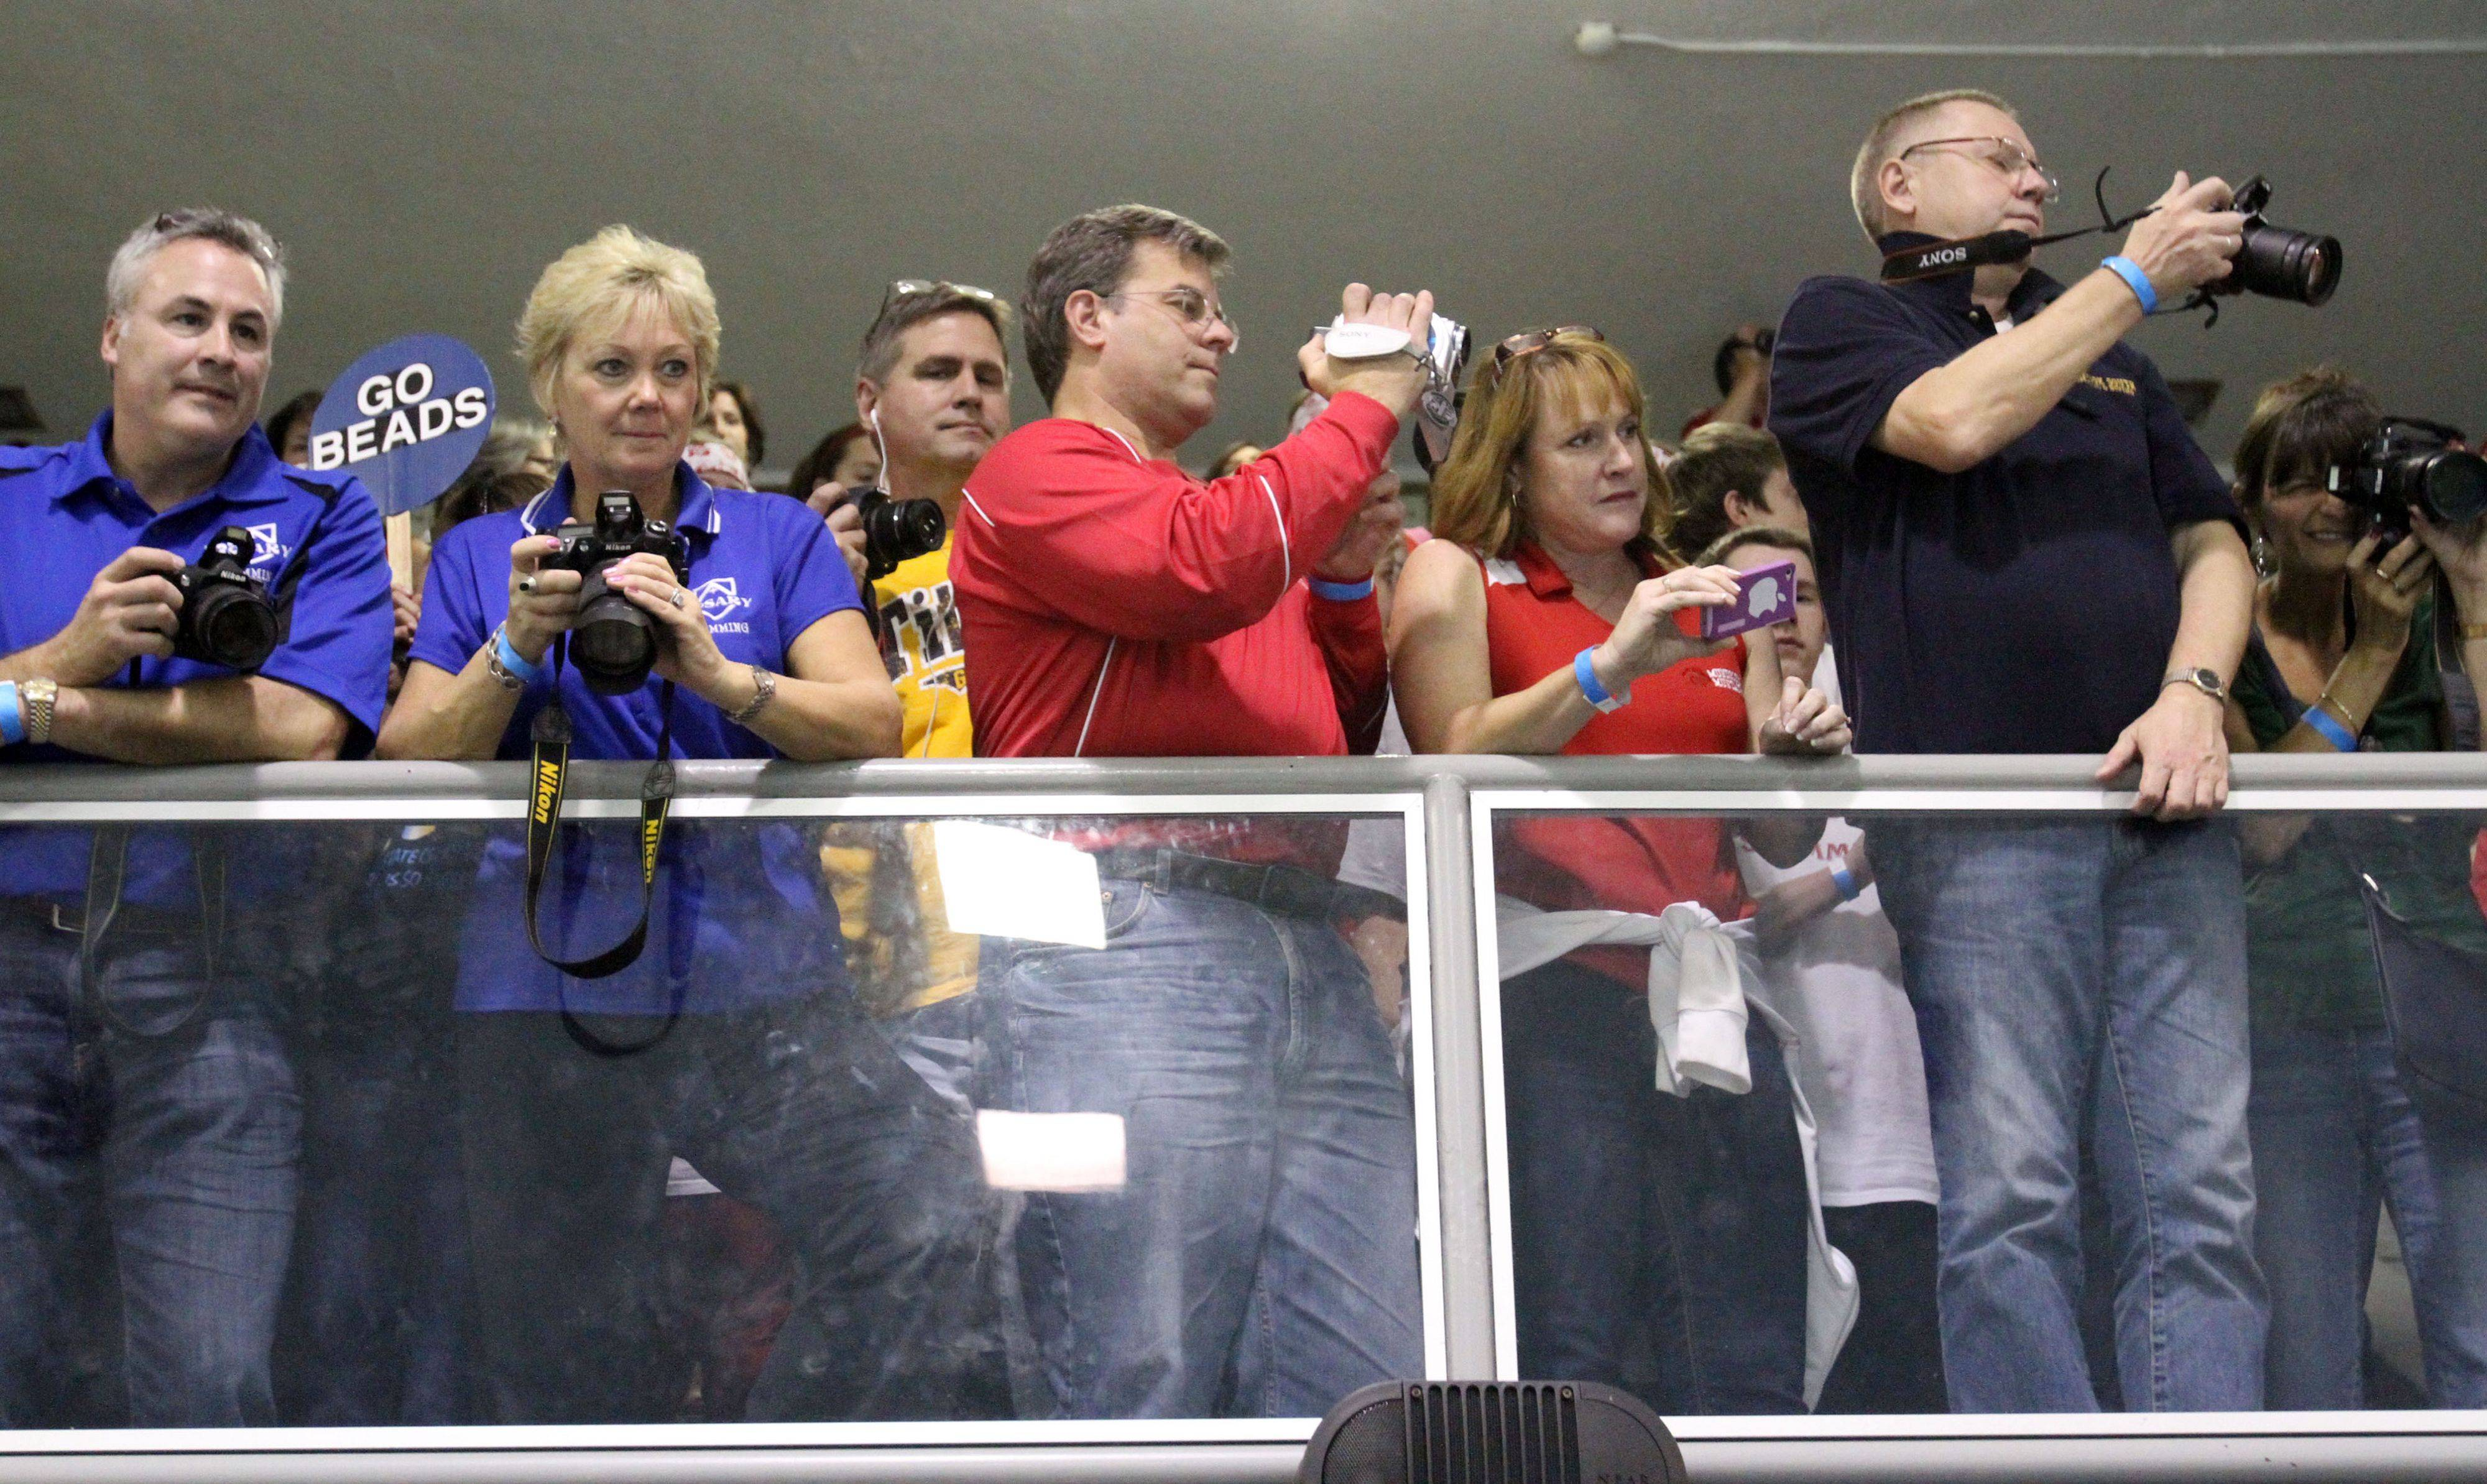 Parents in the upper-deck photographing the IHSA state championships in Winnetka on Saturday, November 19th.